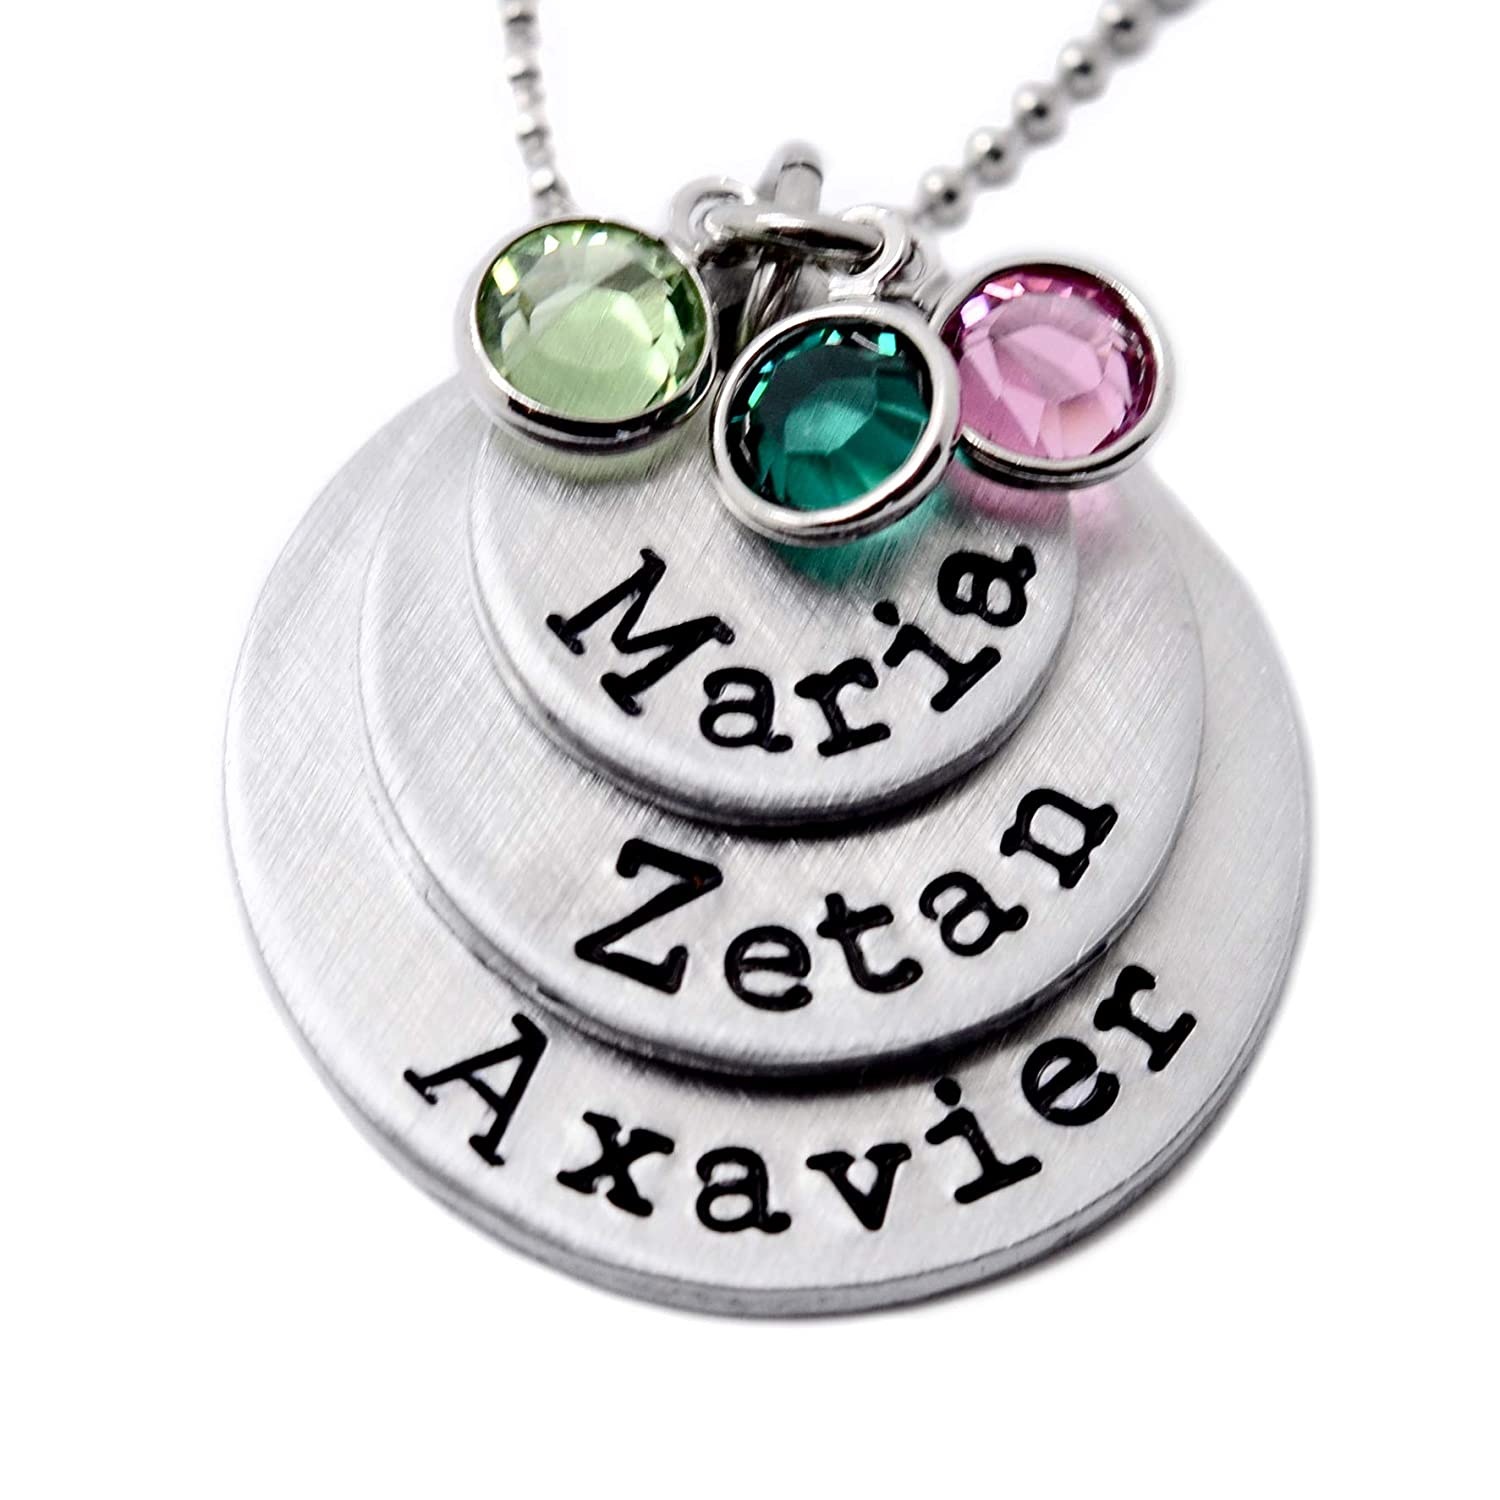 Mother/'s Day Personalized Necklace; Name and Birthstone Necklace; Hand Stamped Name Necklace; Personalized Children/'s Name Necklace